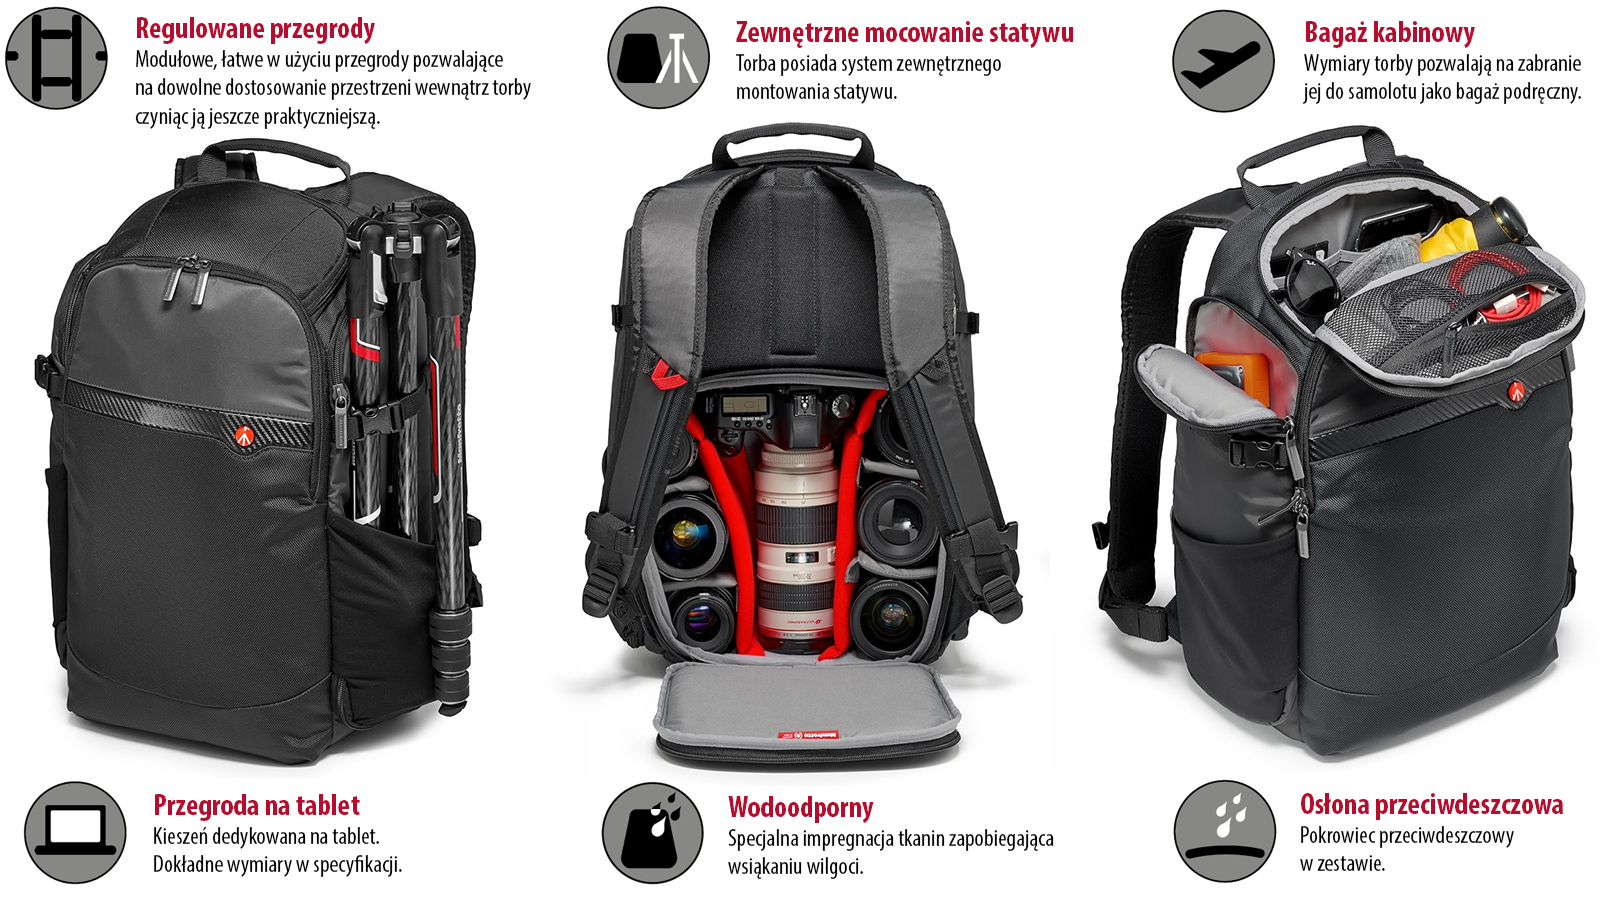 Manfrotto Advanced Plecak BeFree na aparat, drona